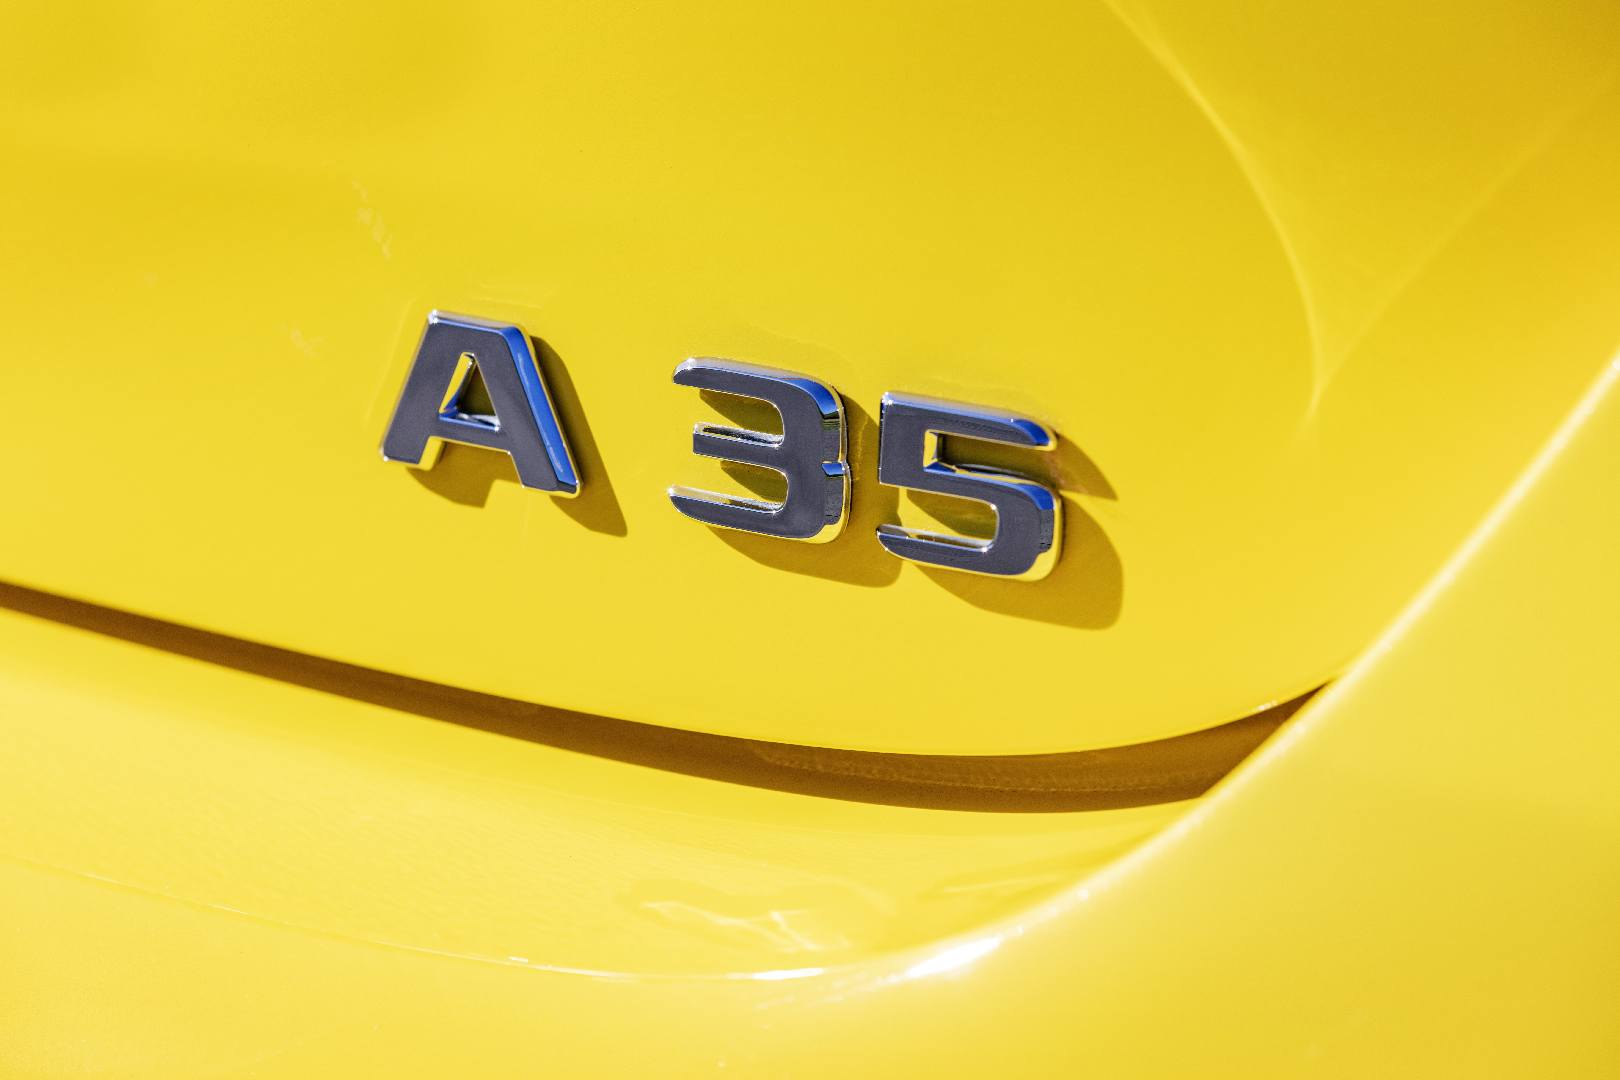 Mercedes-AMG A35 hot hatchback revealed ahead of Paris Motor Show